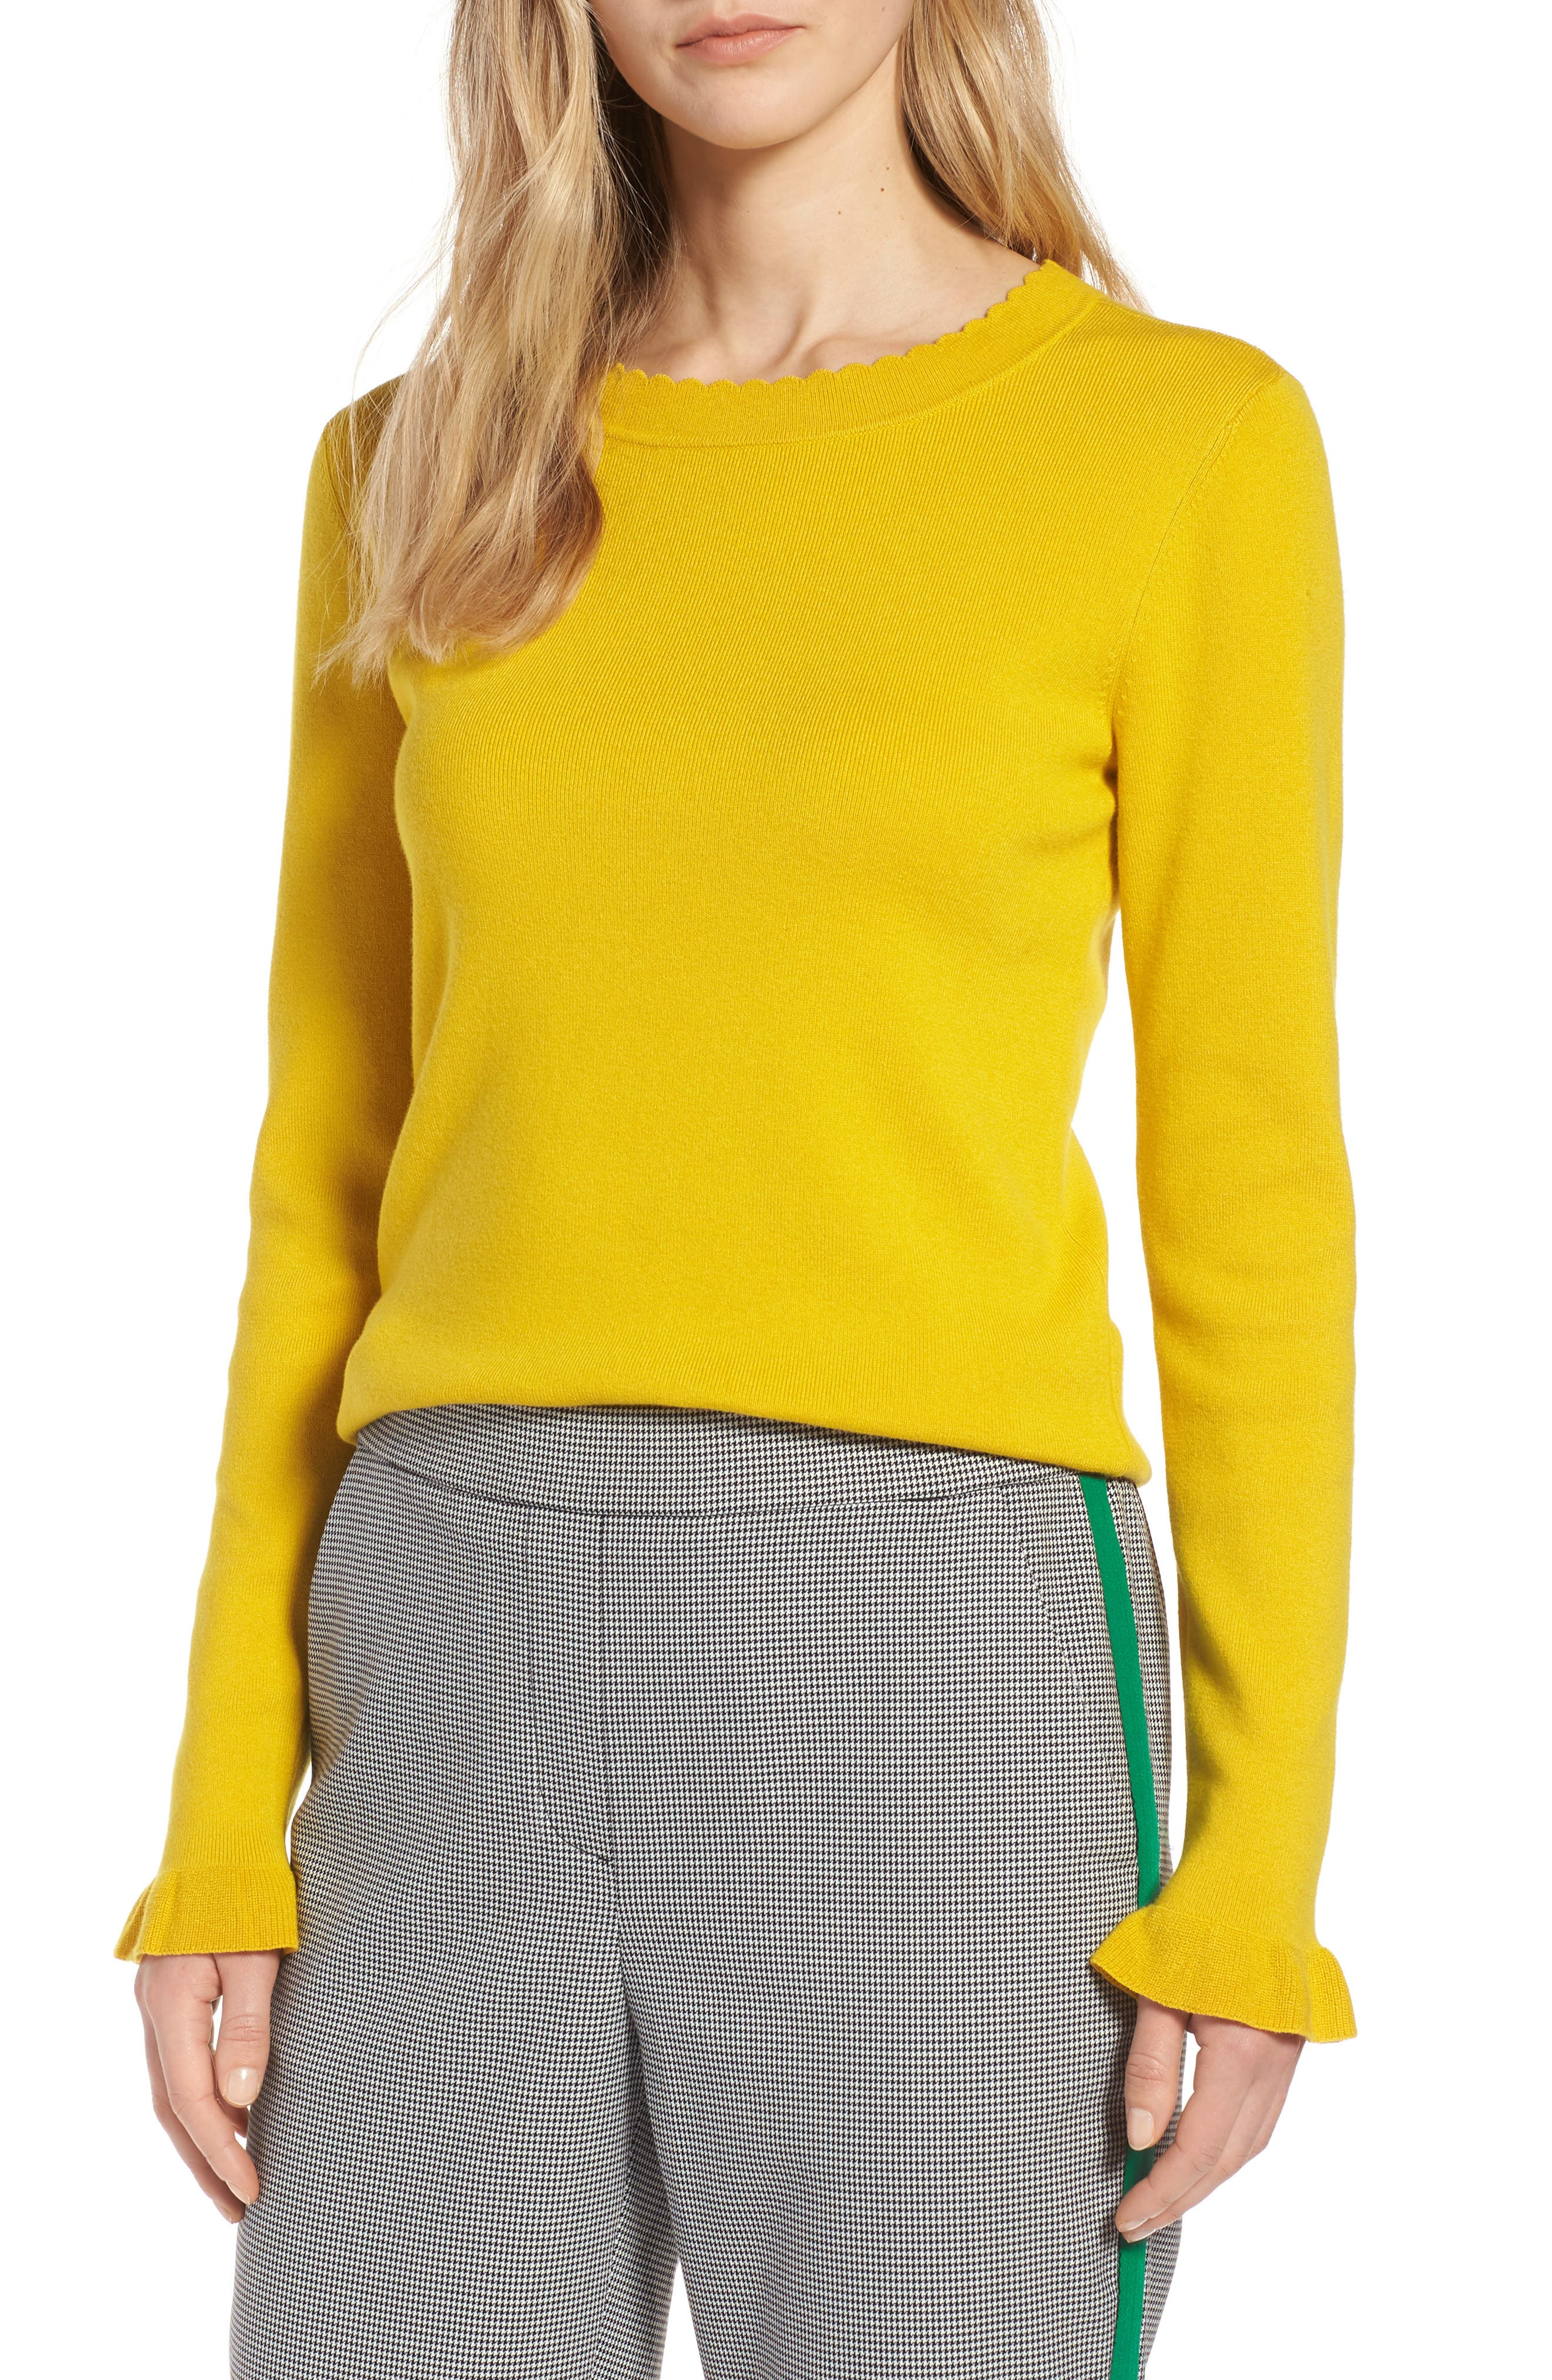 Scallop Trim Sweater,                             Main thumbnail 1, color,                             Yellow Sulphur